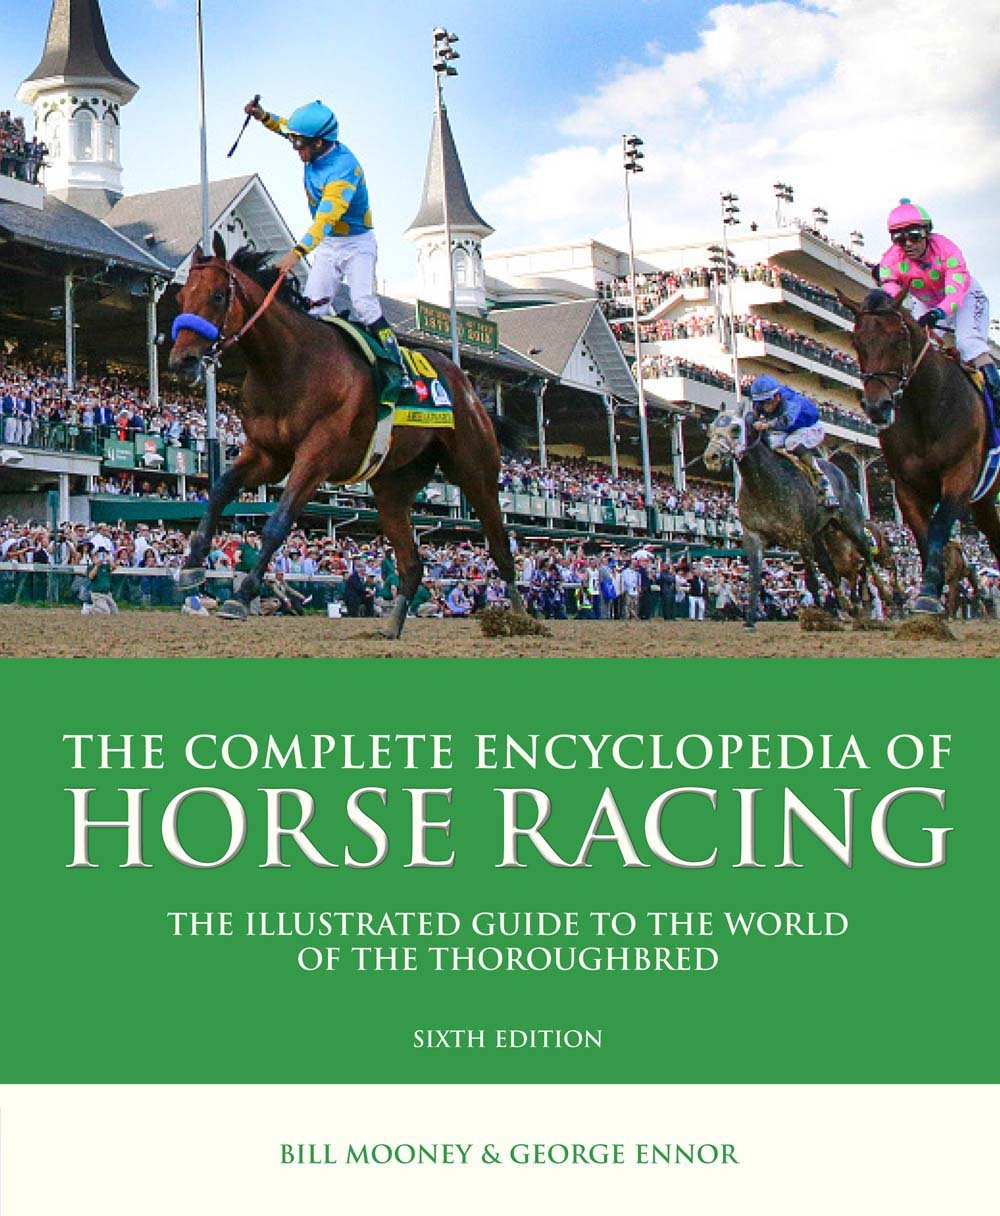 The Complete Encyclopedia Of Horse Racing Illustrated Guide To World Thoroughbred